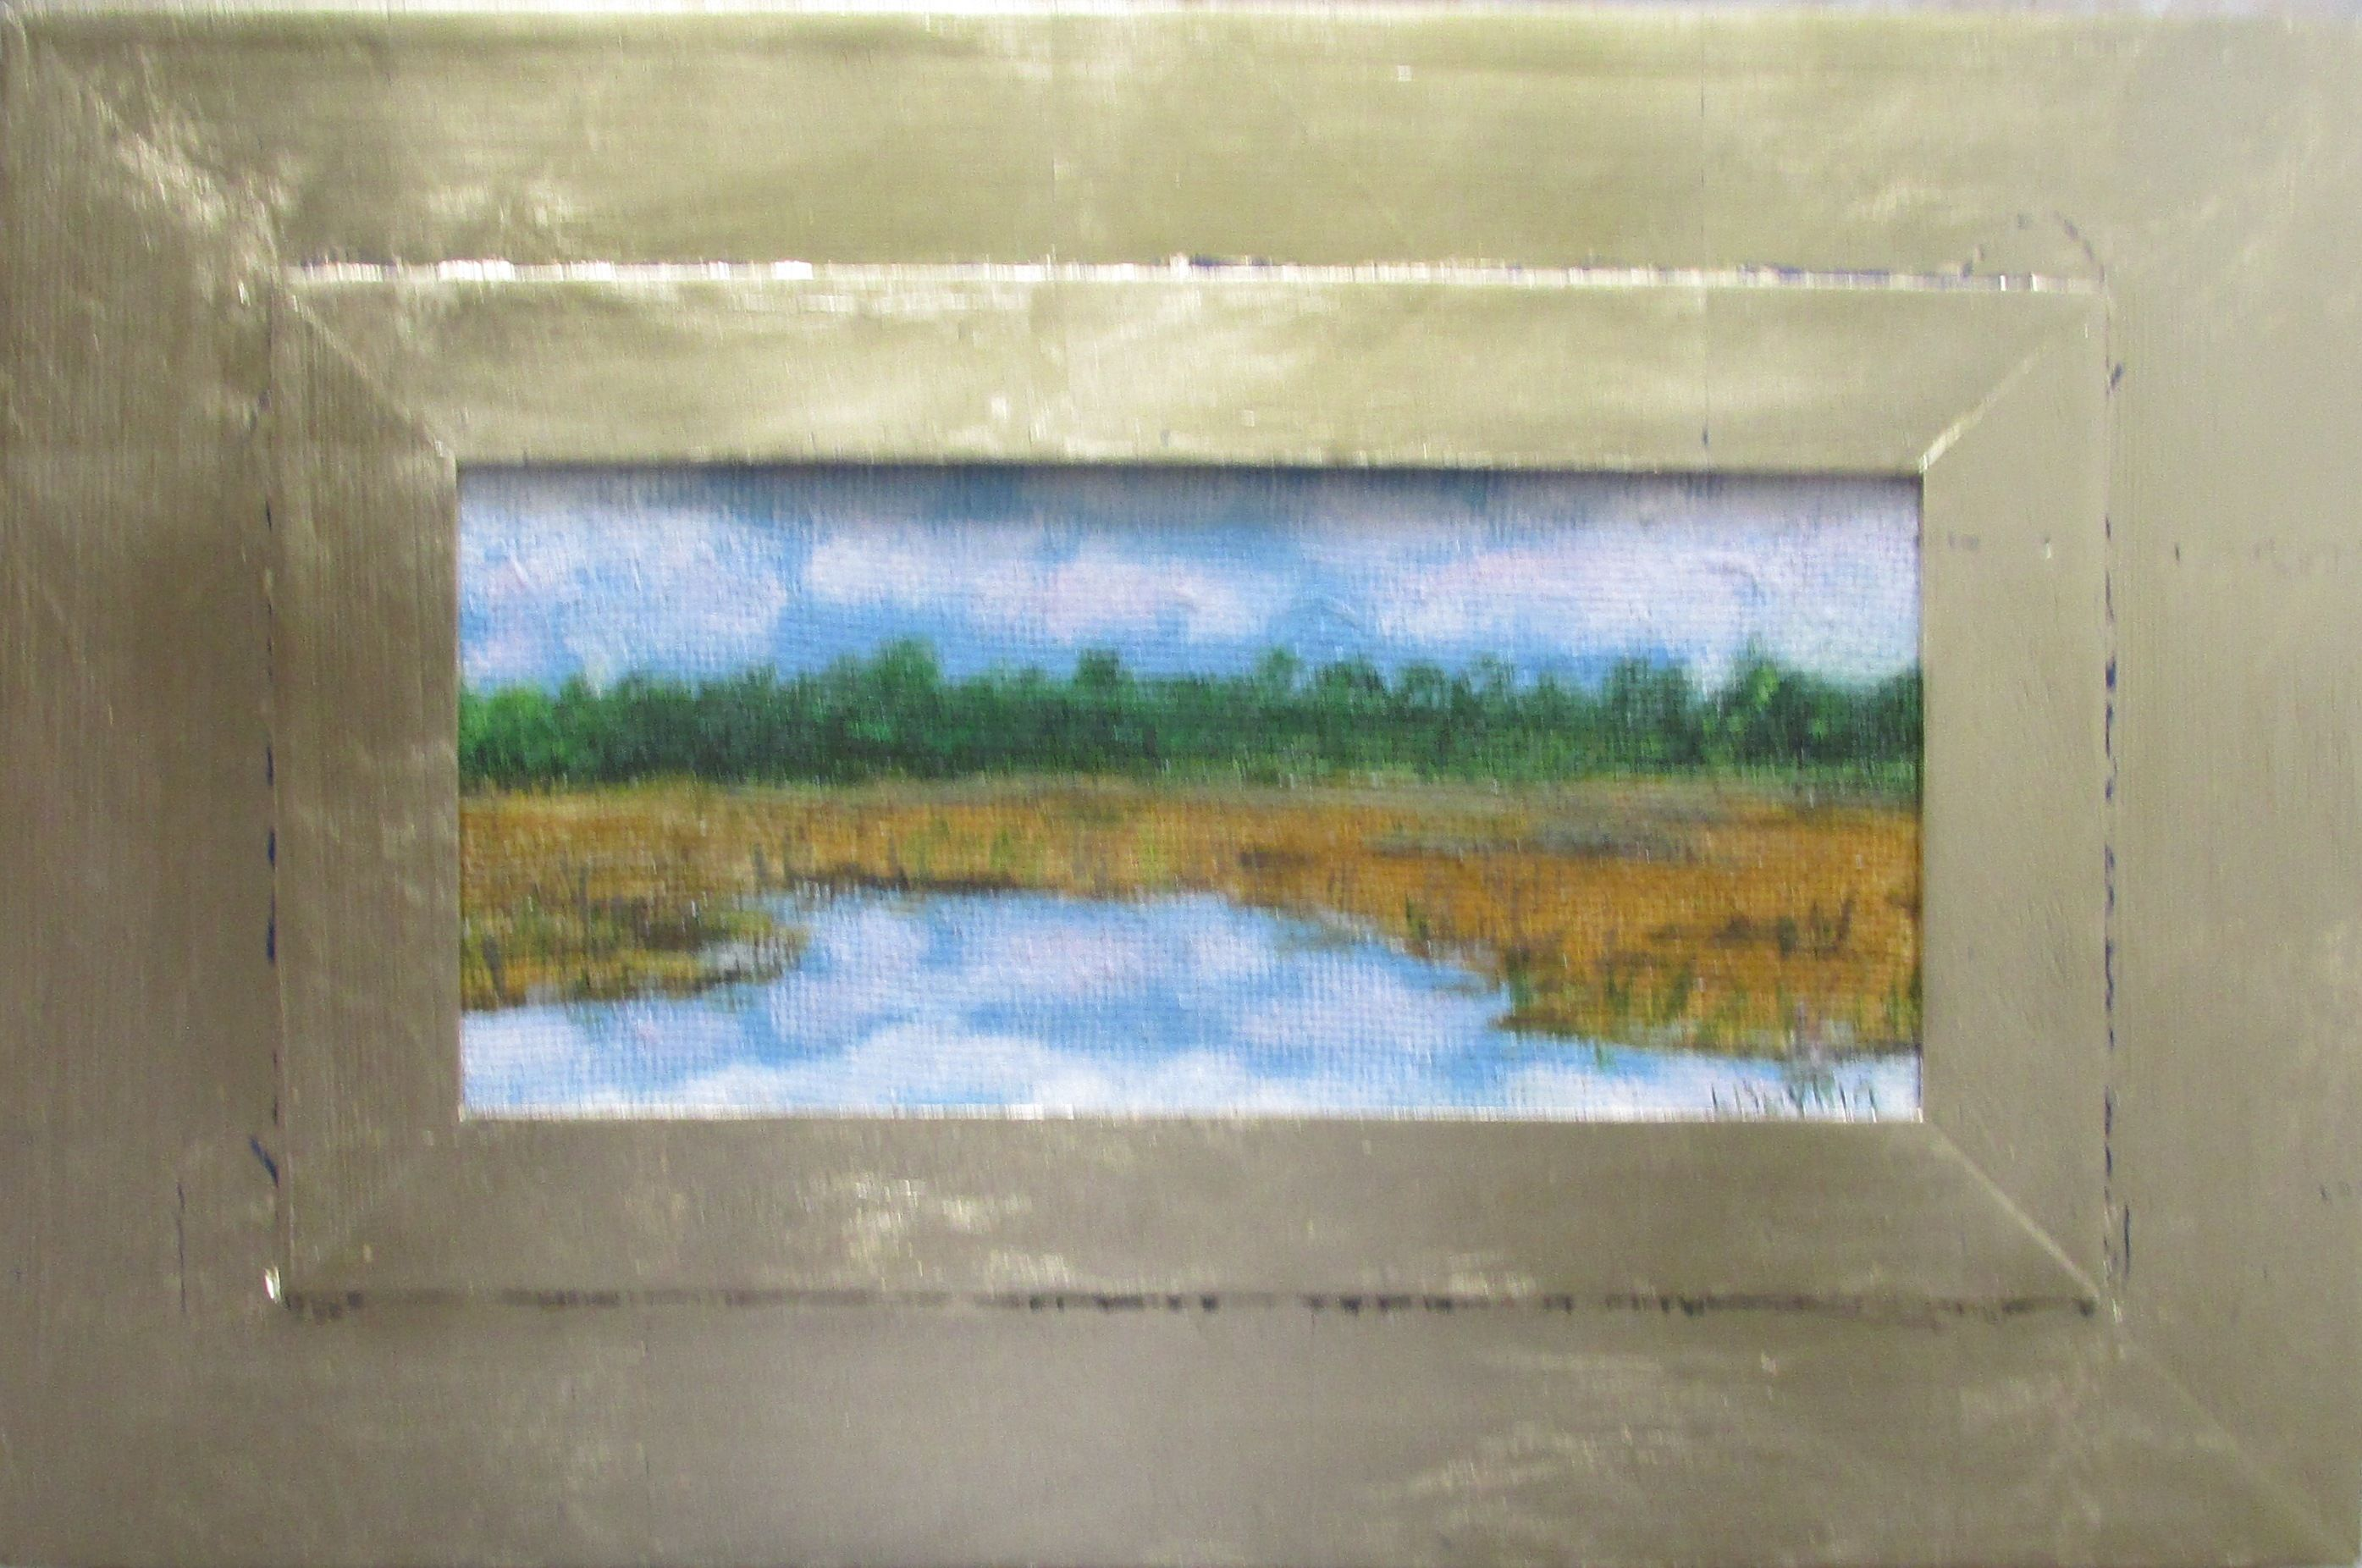 Sanctuary S Edge By Linda L Boykin In 2020 Painting Art Sanctuary